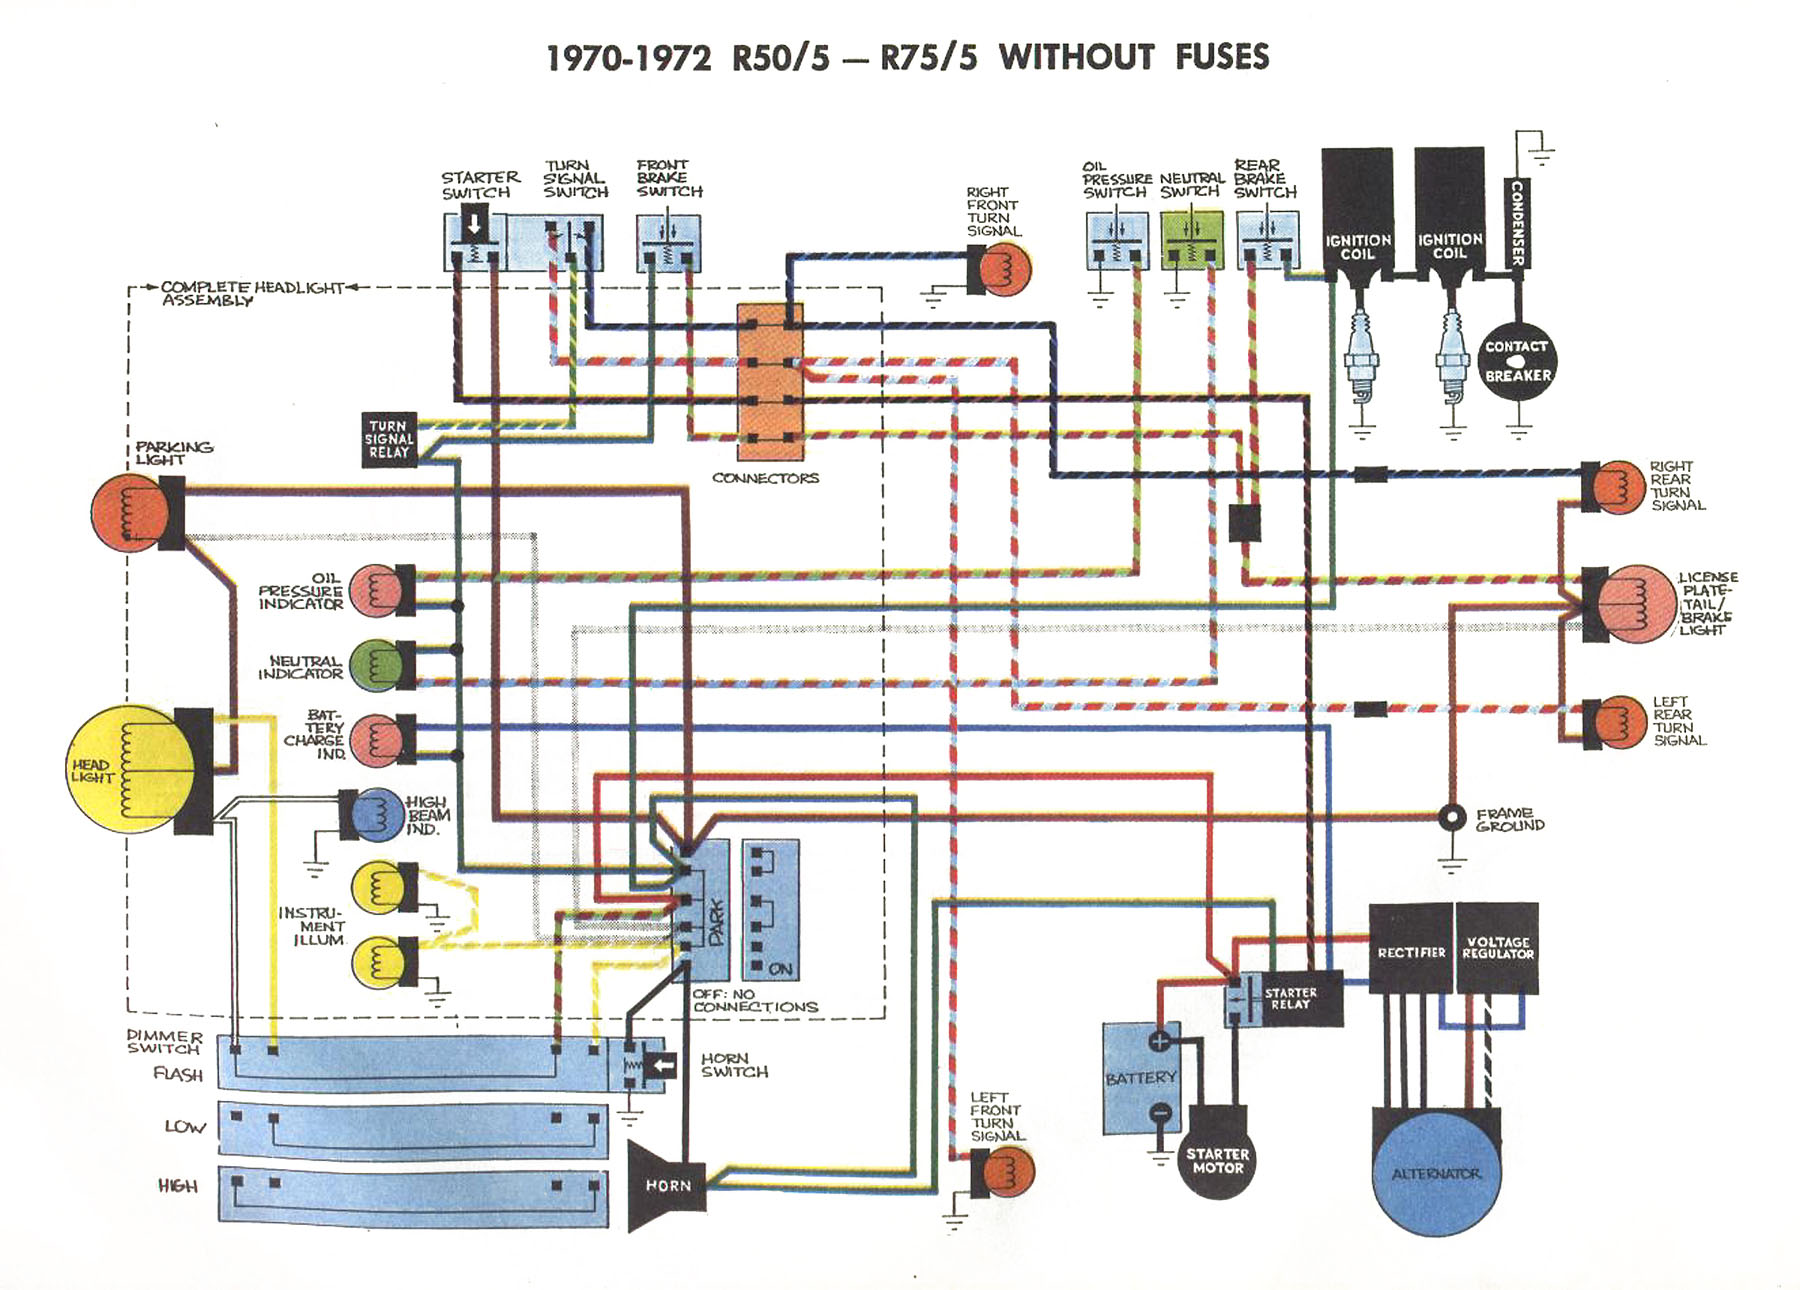 5_unfused_schematic bmw r100 wiring diagram bmw r75 6 wiring diagram \u2022 wiring diagrams 04 Sonata V6 Ignition Coil Wiring Harness at honlapkeszites.co